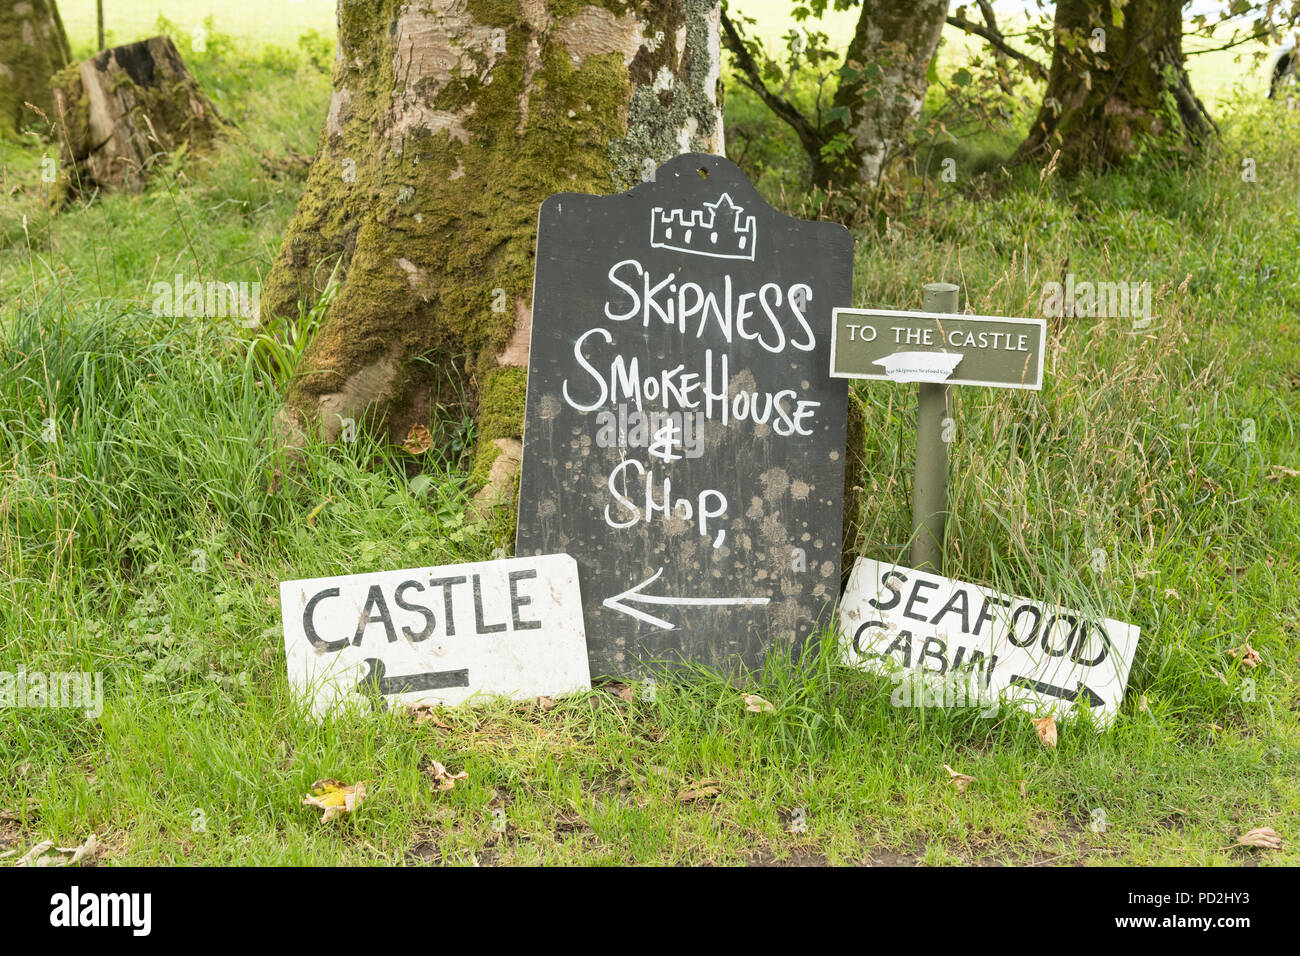 Skipness Castle, Skipness Smokehouse and Skipness Seafood Cabin signs, Skipness Estate, by Tarbert, Argyll, Scotland, UK - Stock Image